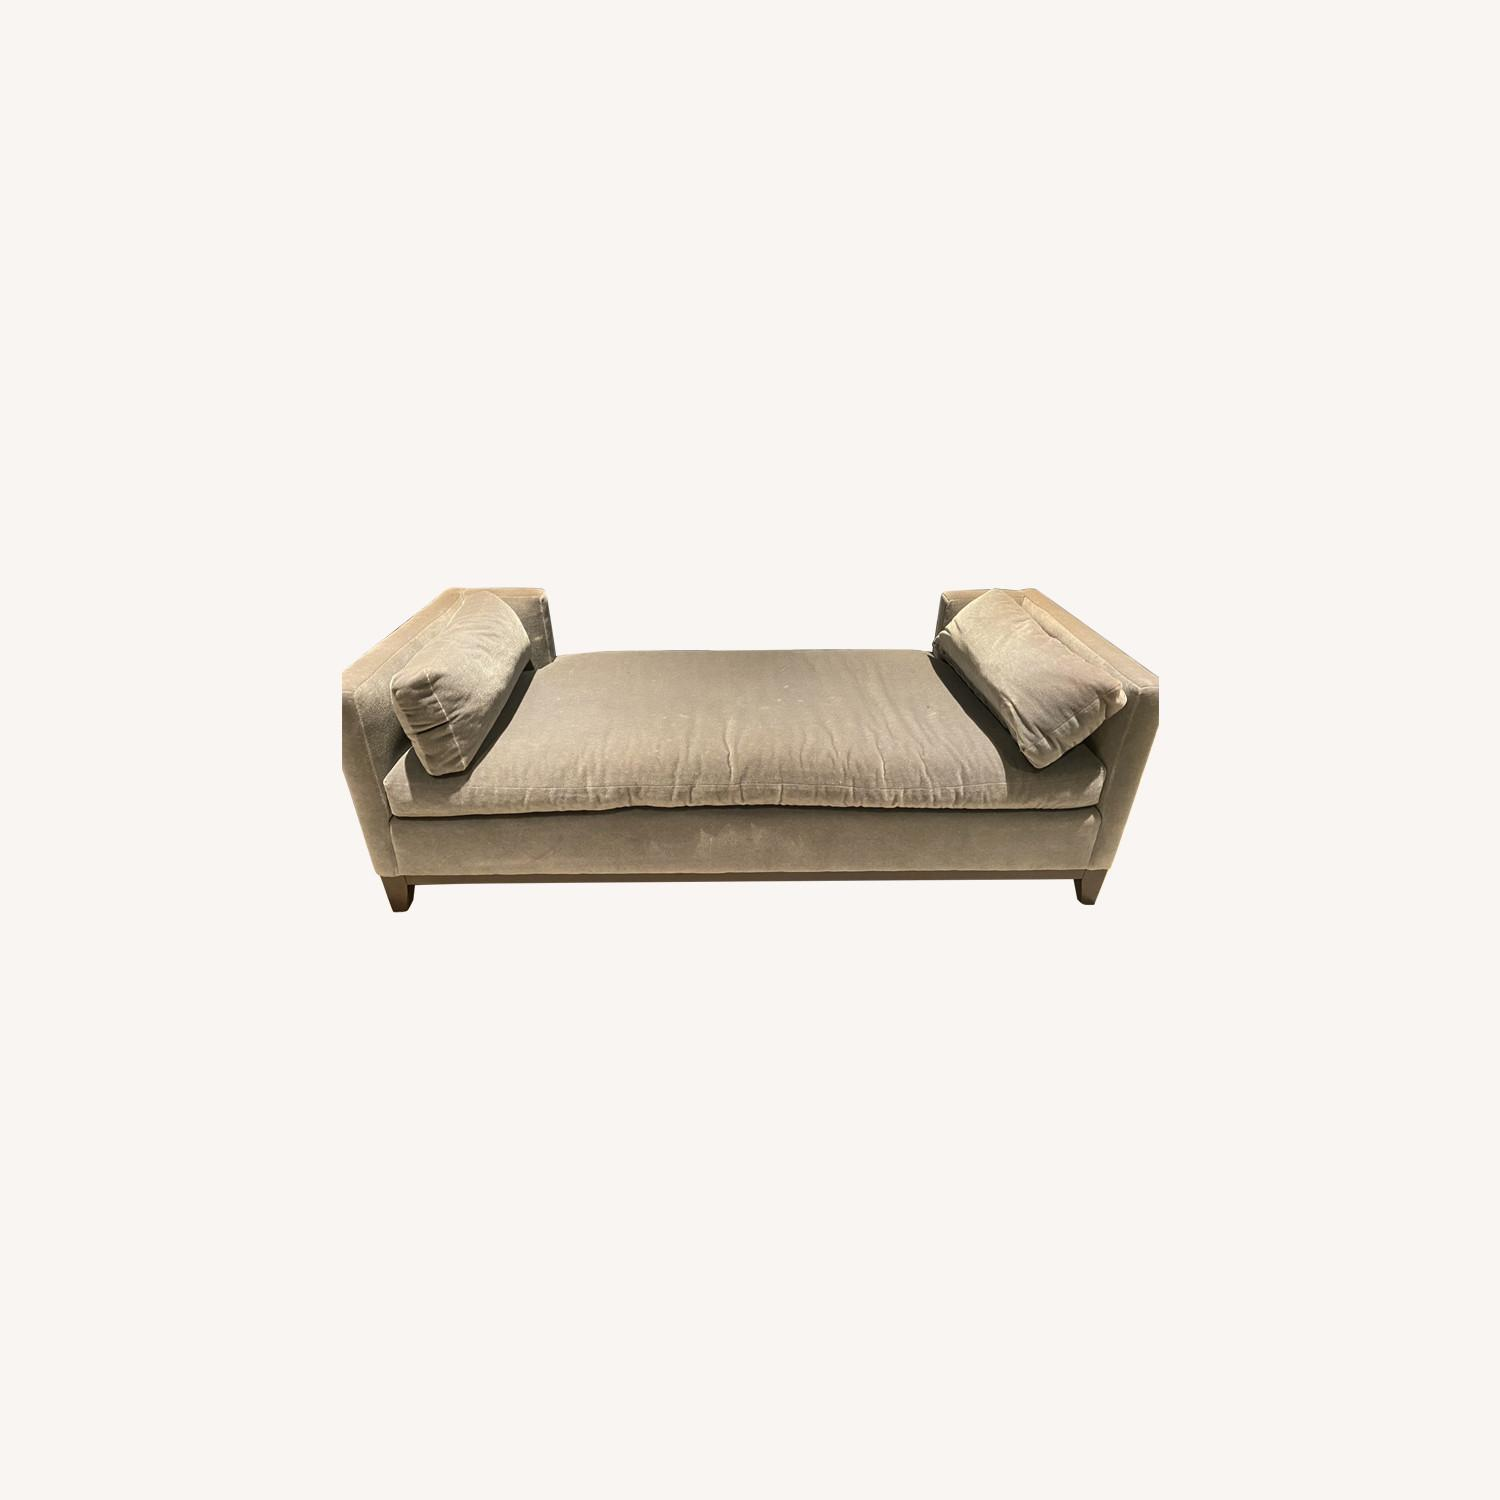 William Sonoma Presidio Settee Daybed - image-0